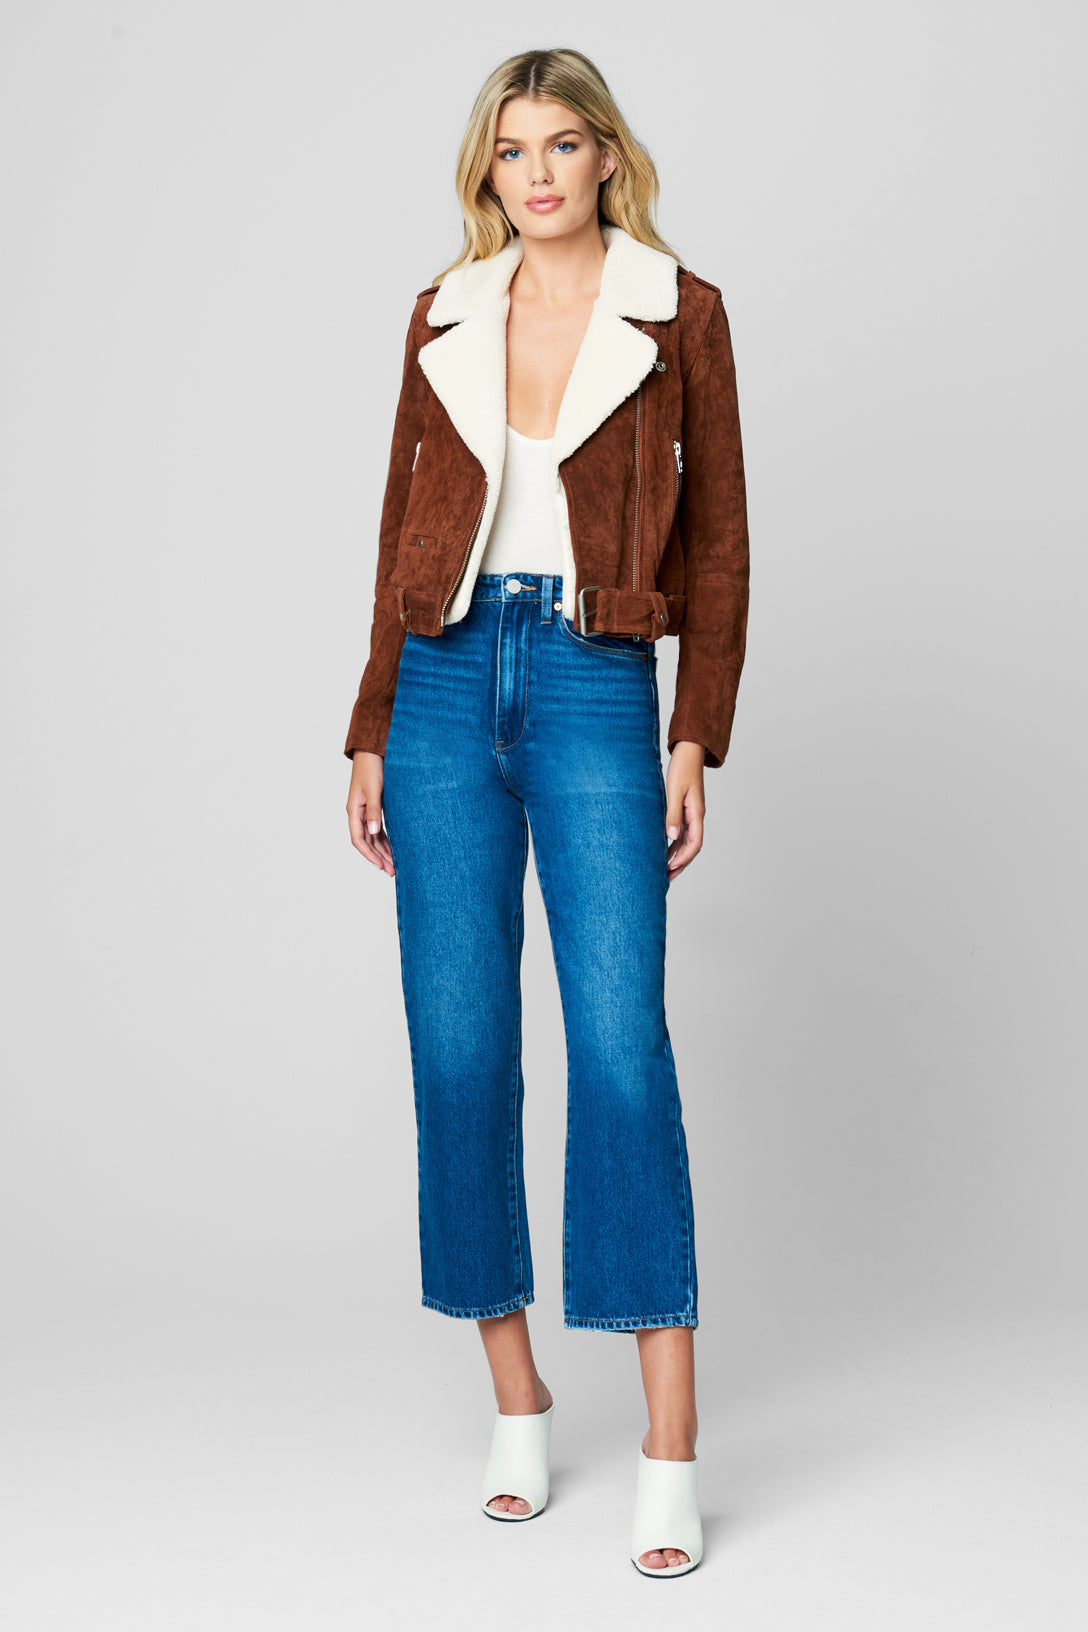 Ginger Bread Jacket | Blank NYC